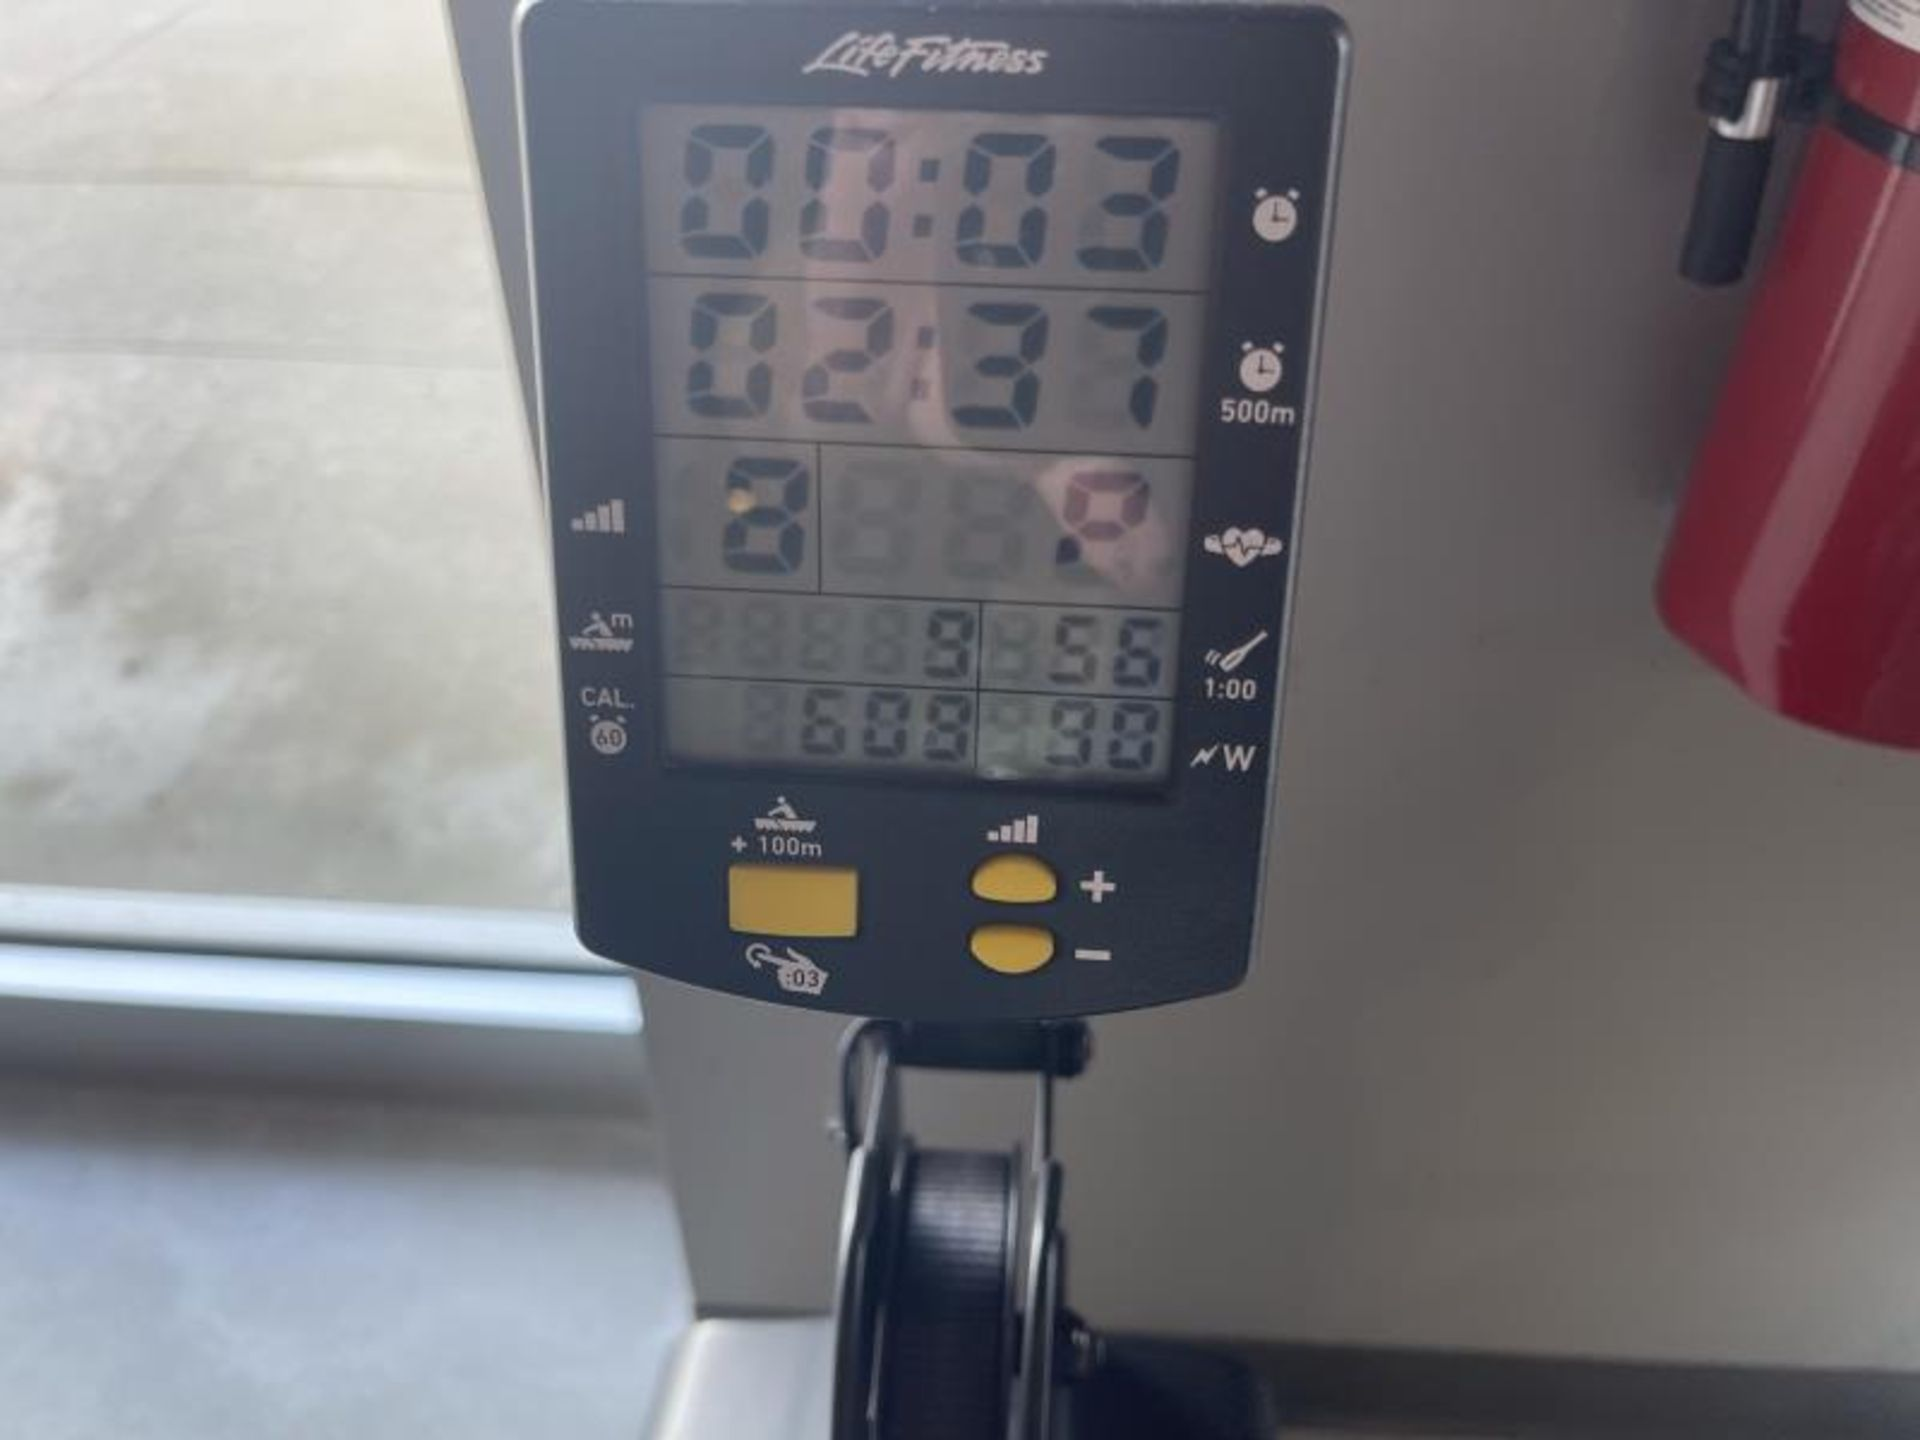 Life Fitness Rowing Machine M: GER-ALLLX-102 - Image 2 of 4